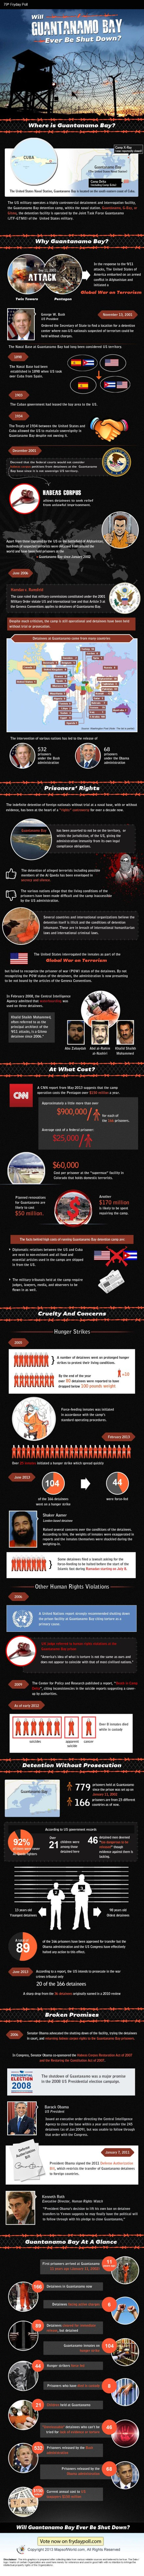 will-guantanamo-bay-ever-be-shut-down-facts-infographic